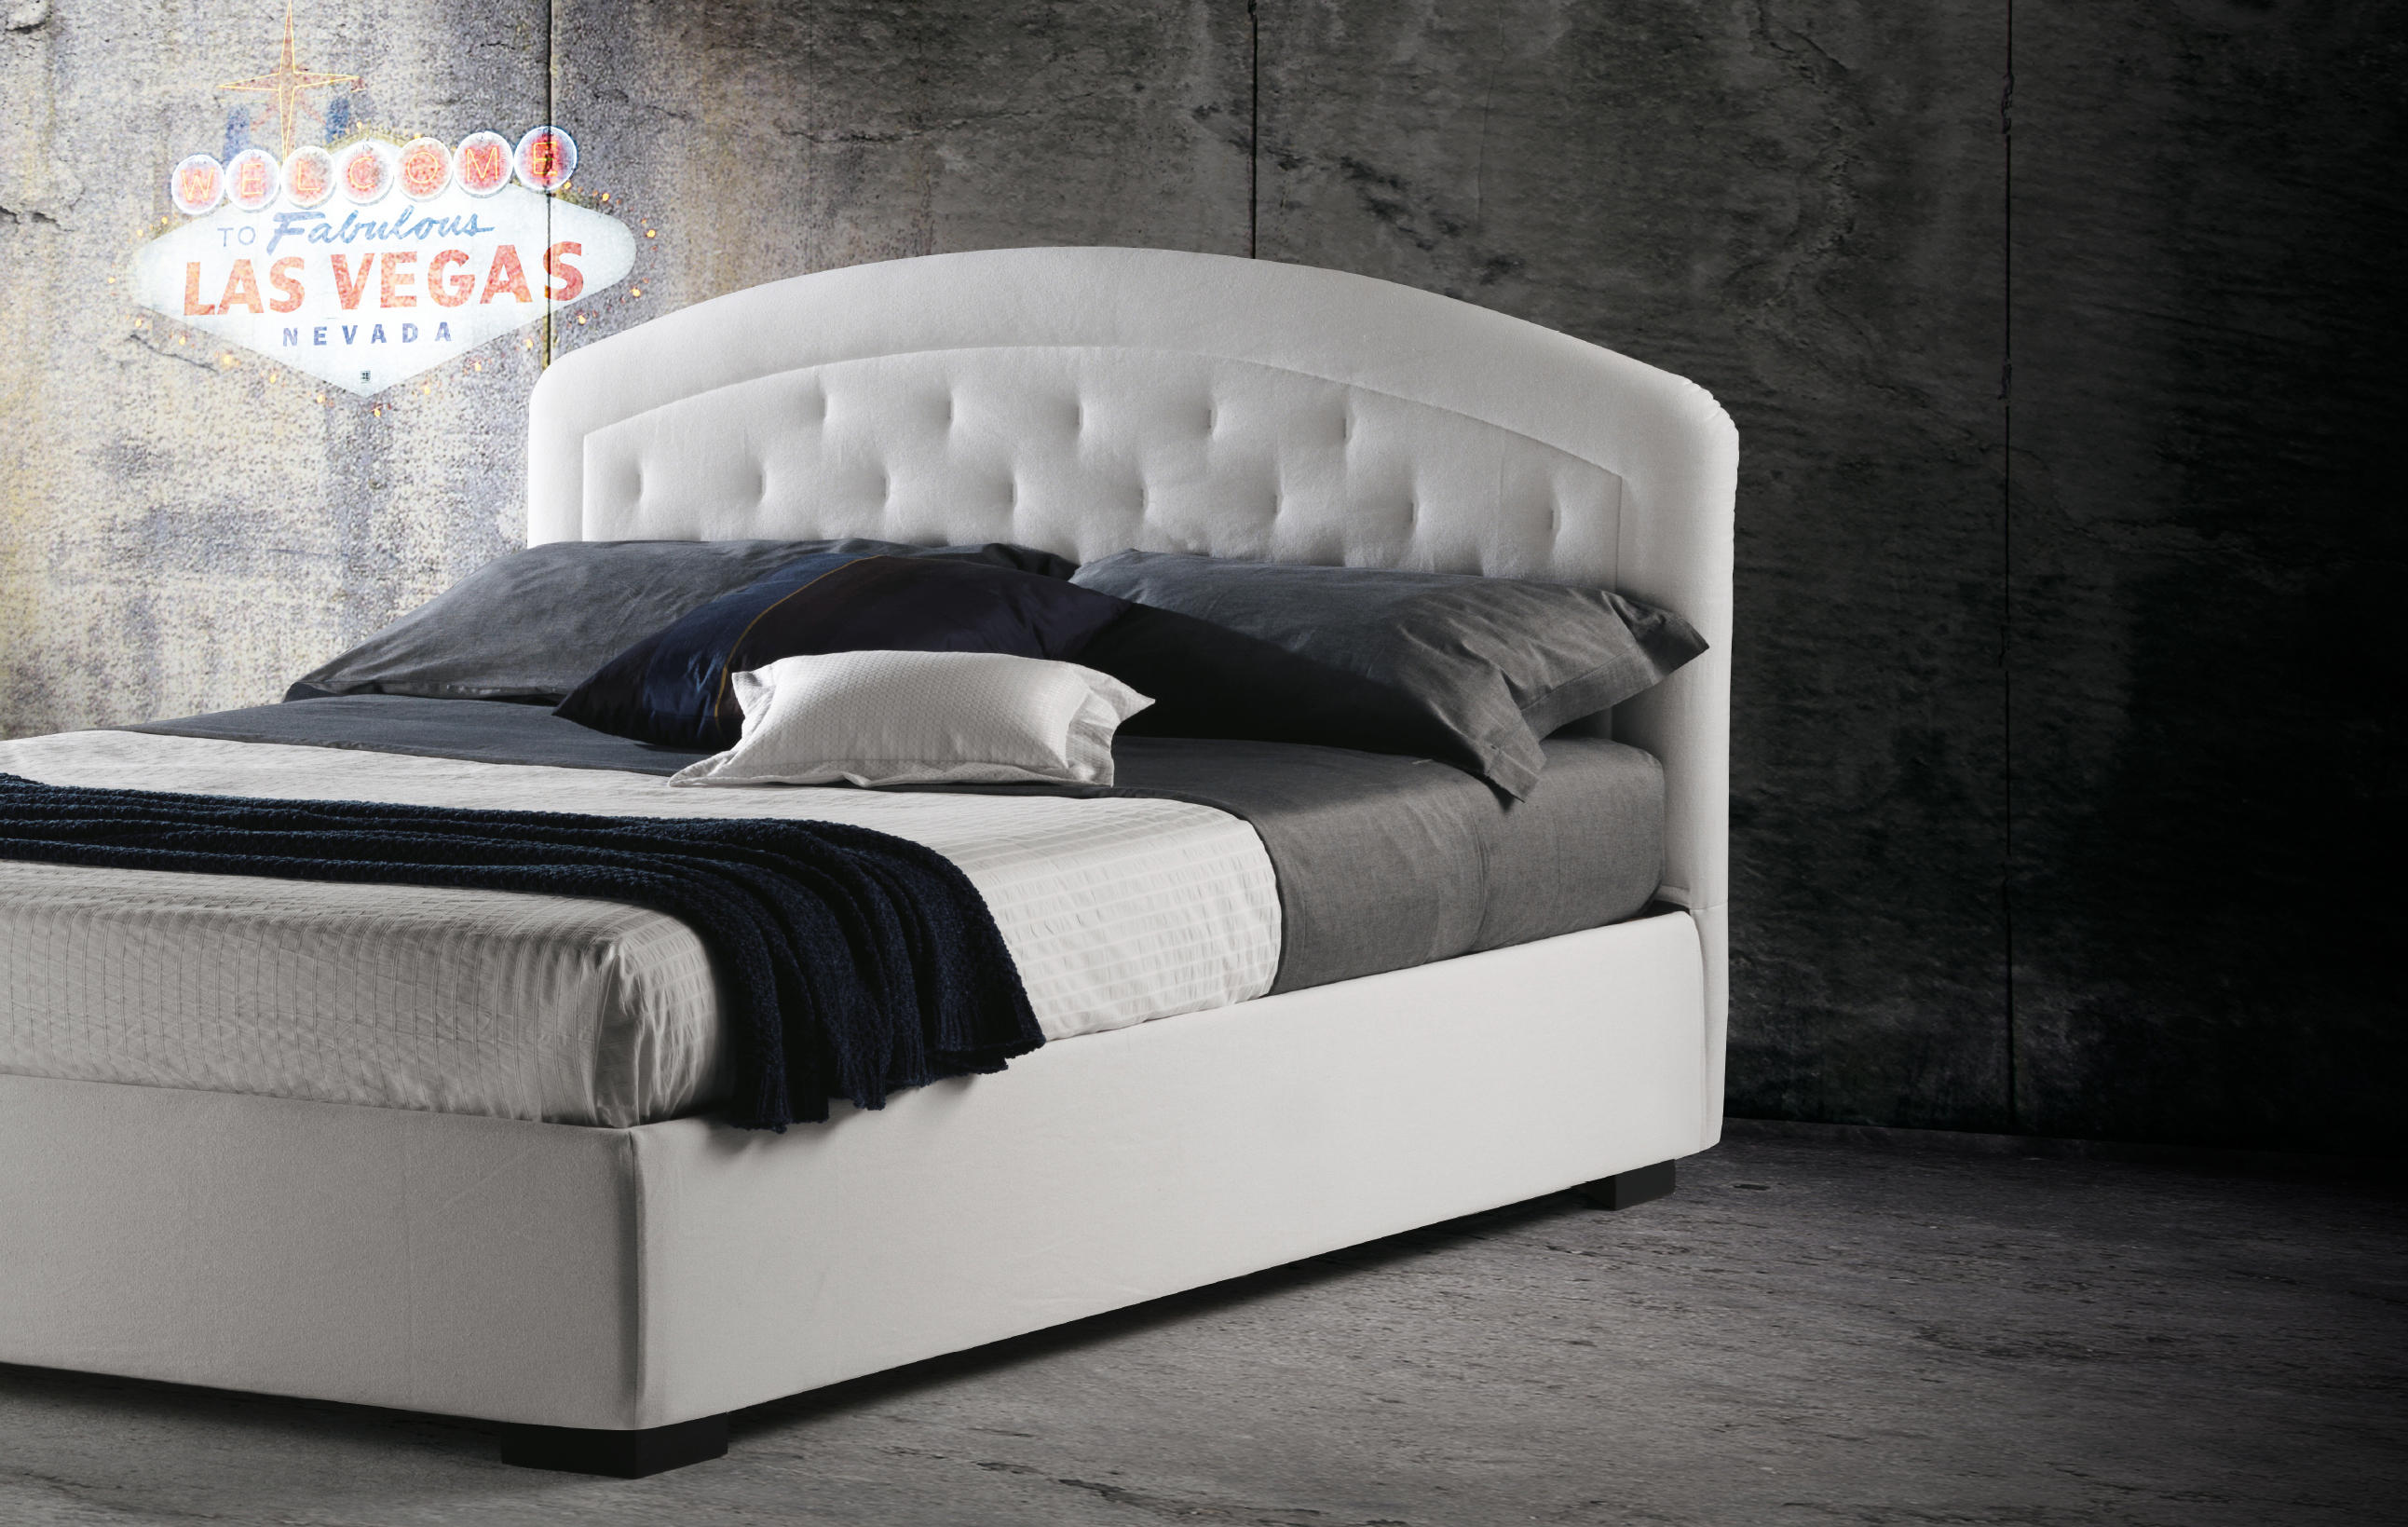 Milano Bedroom Furniture Moorea Double Beds From Milano Bedding Architonic